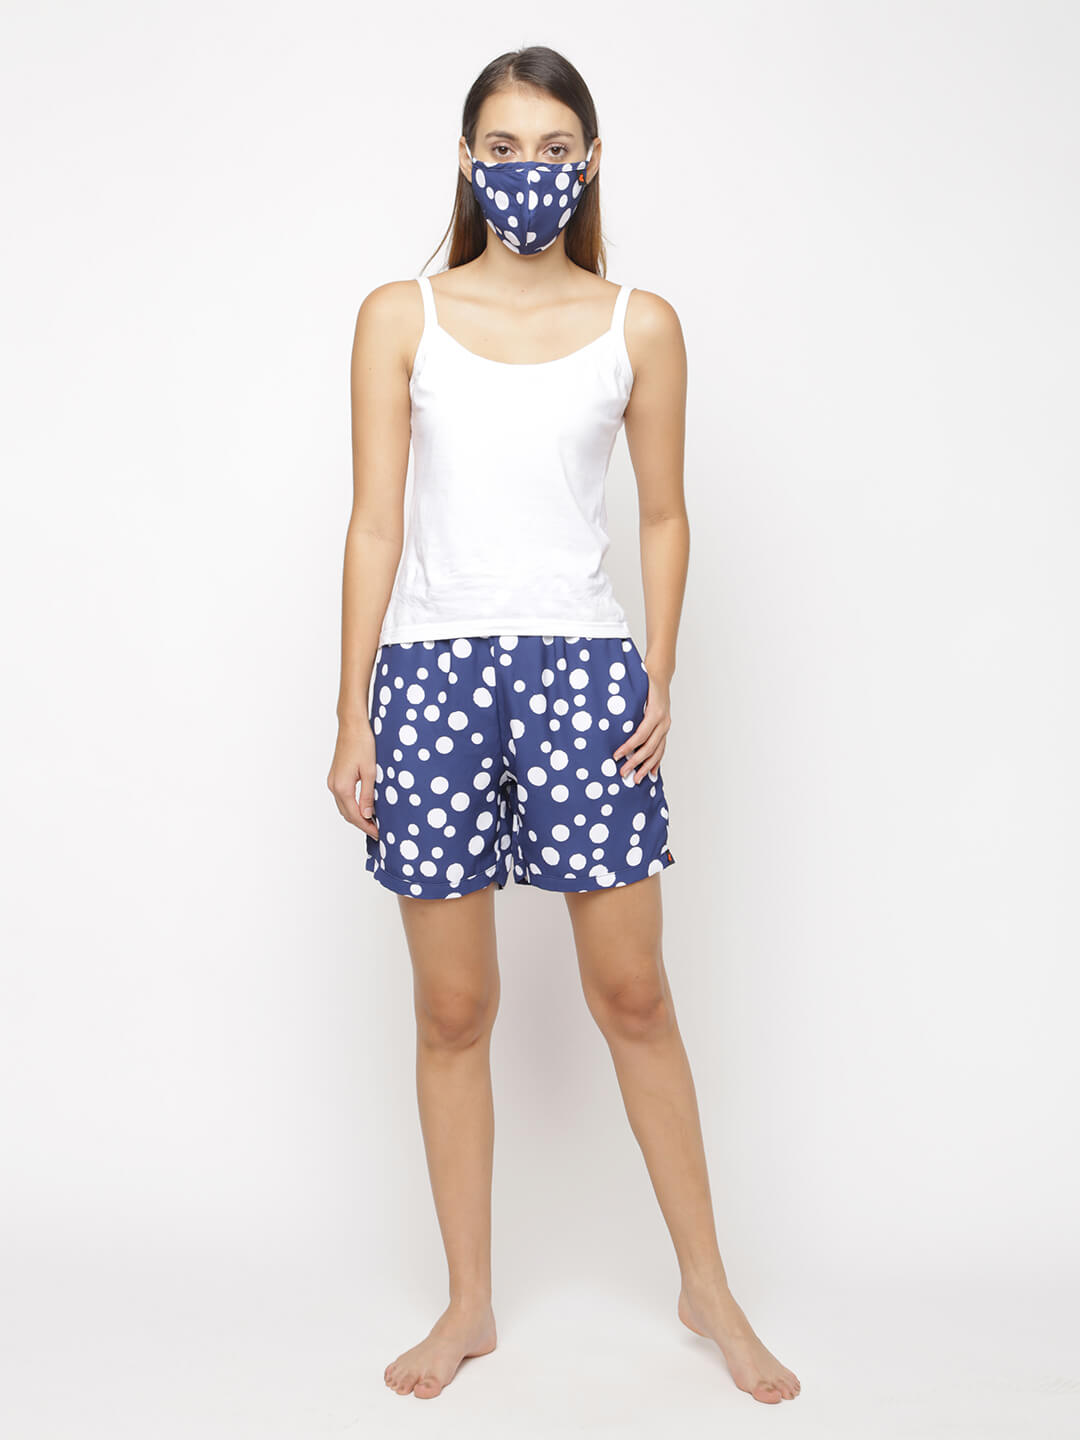 The Polka by the Blue Women WFH Shorts